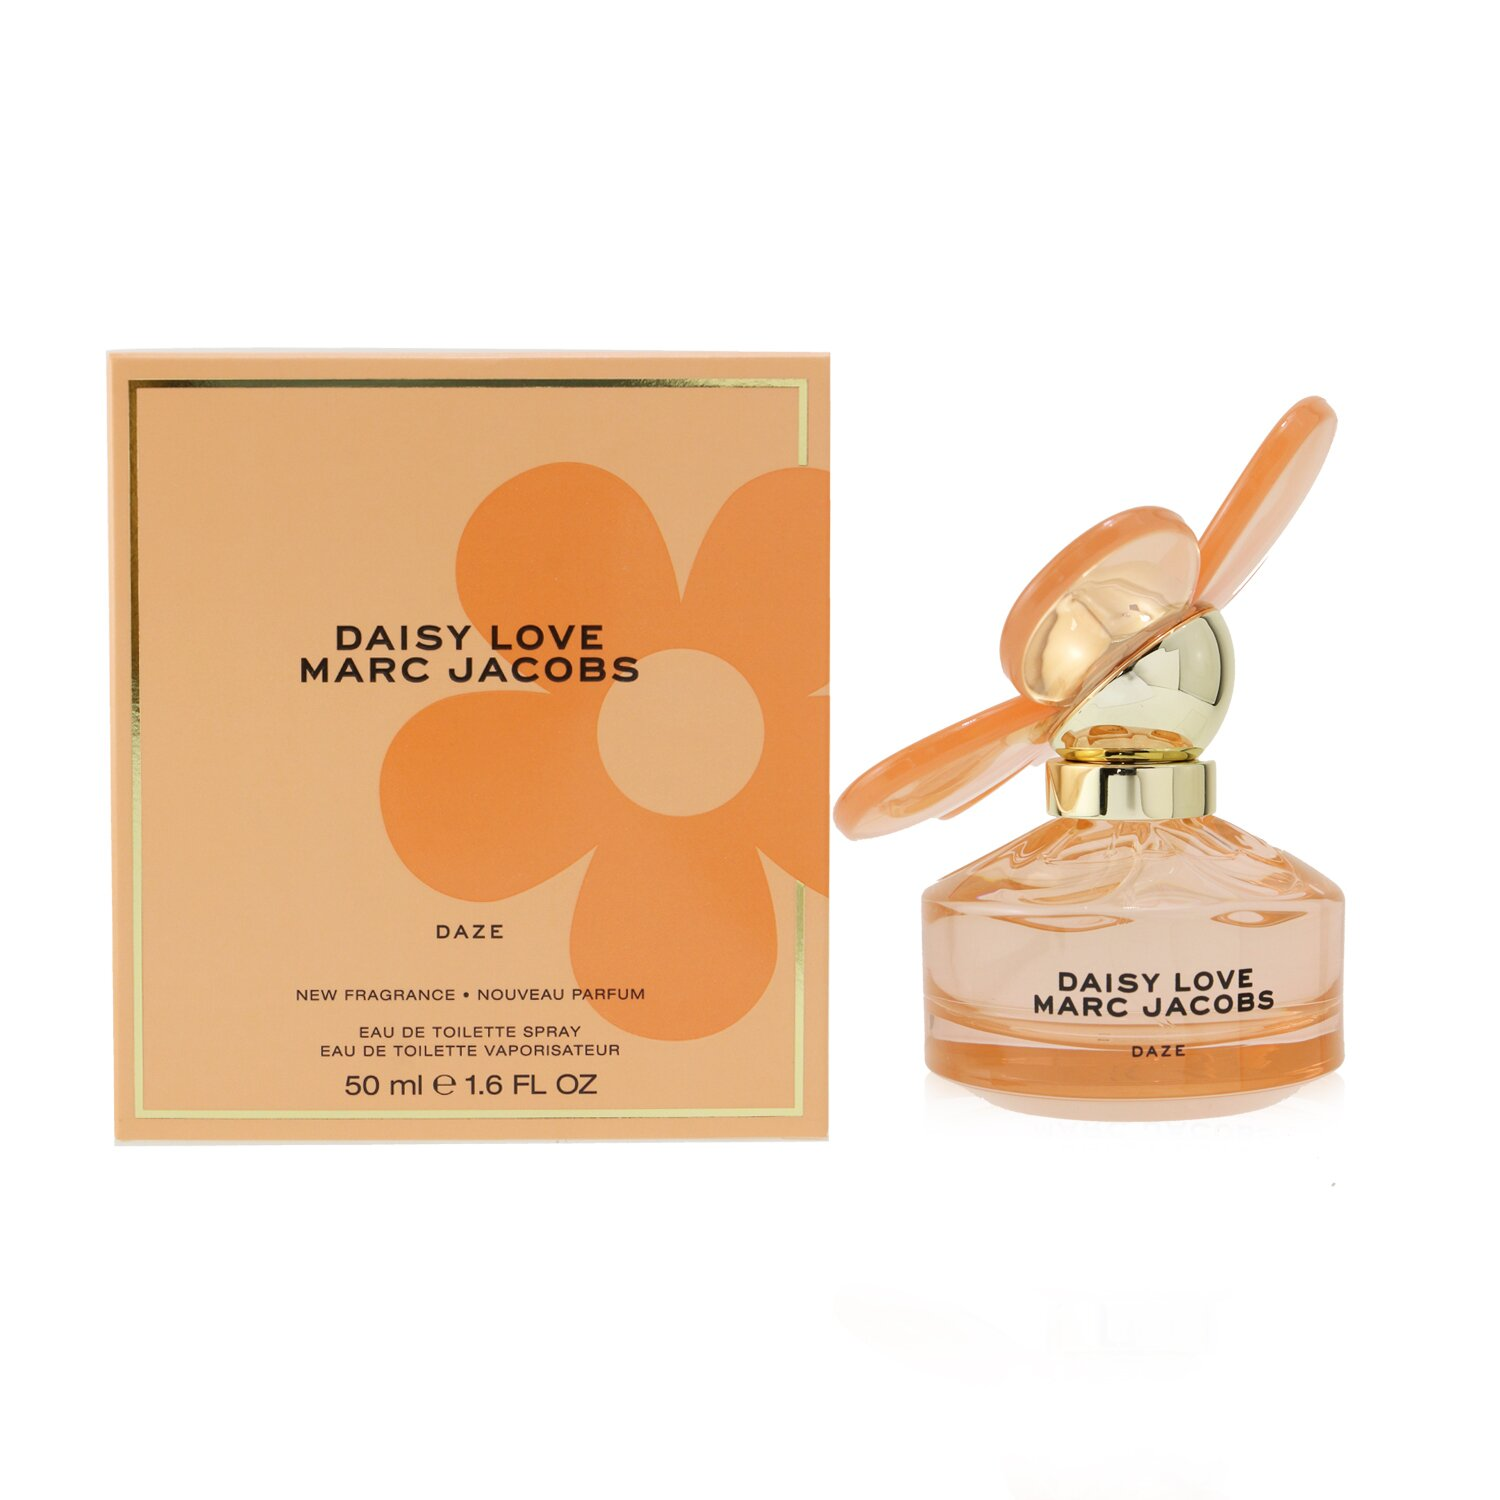 Marc Jacobs - Daisy Love Daze淡香水噴霧